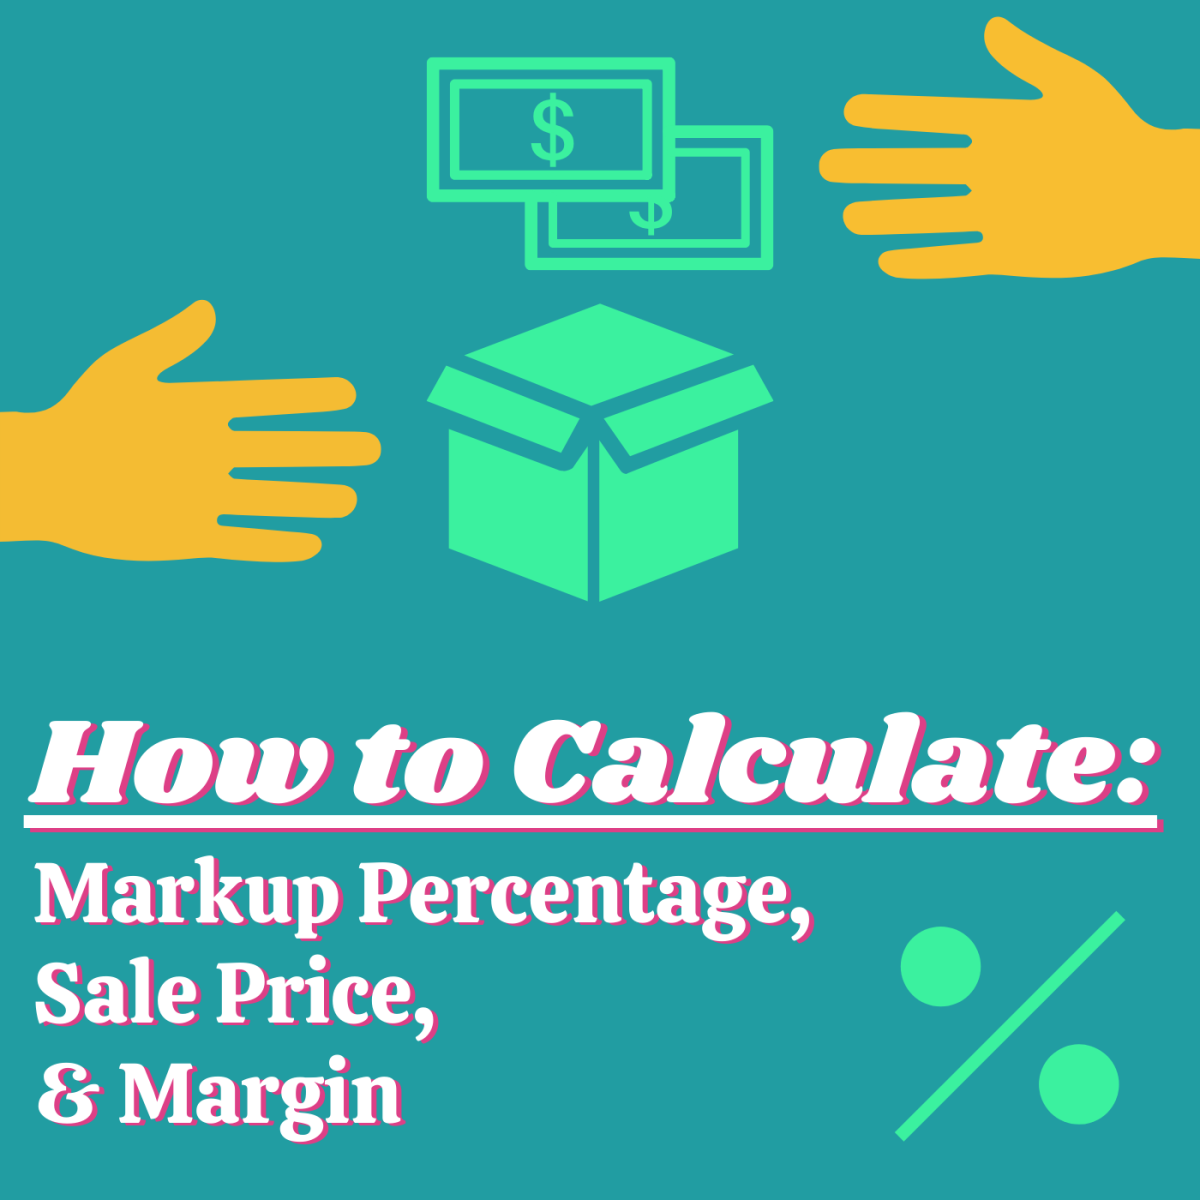 How to Calculate Markup Price, Markup Percentage, and Margin